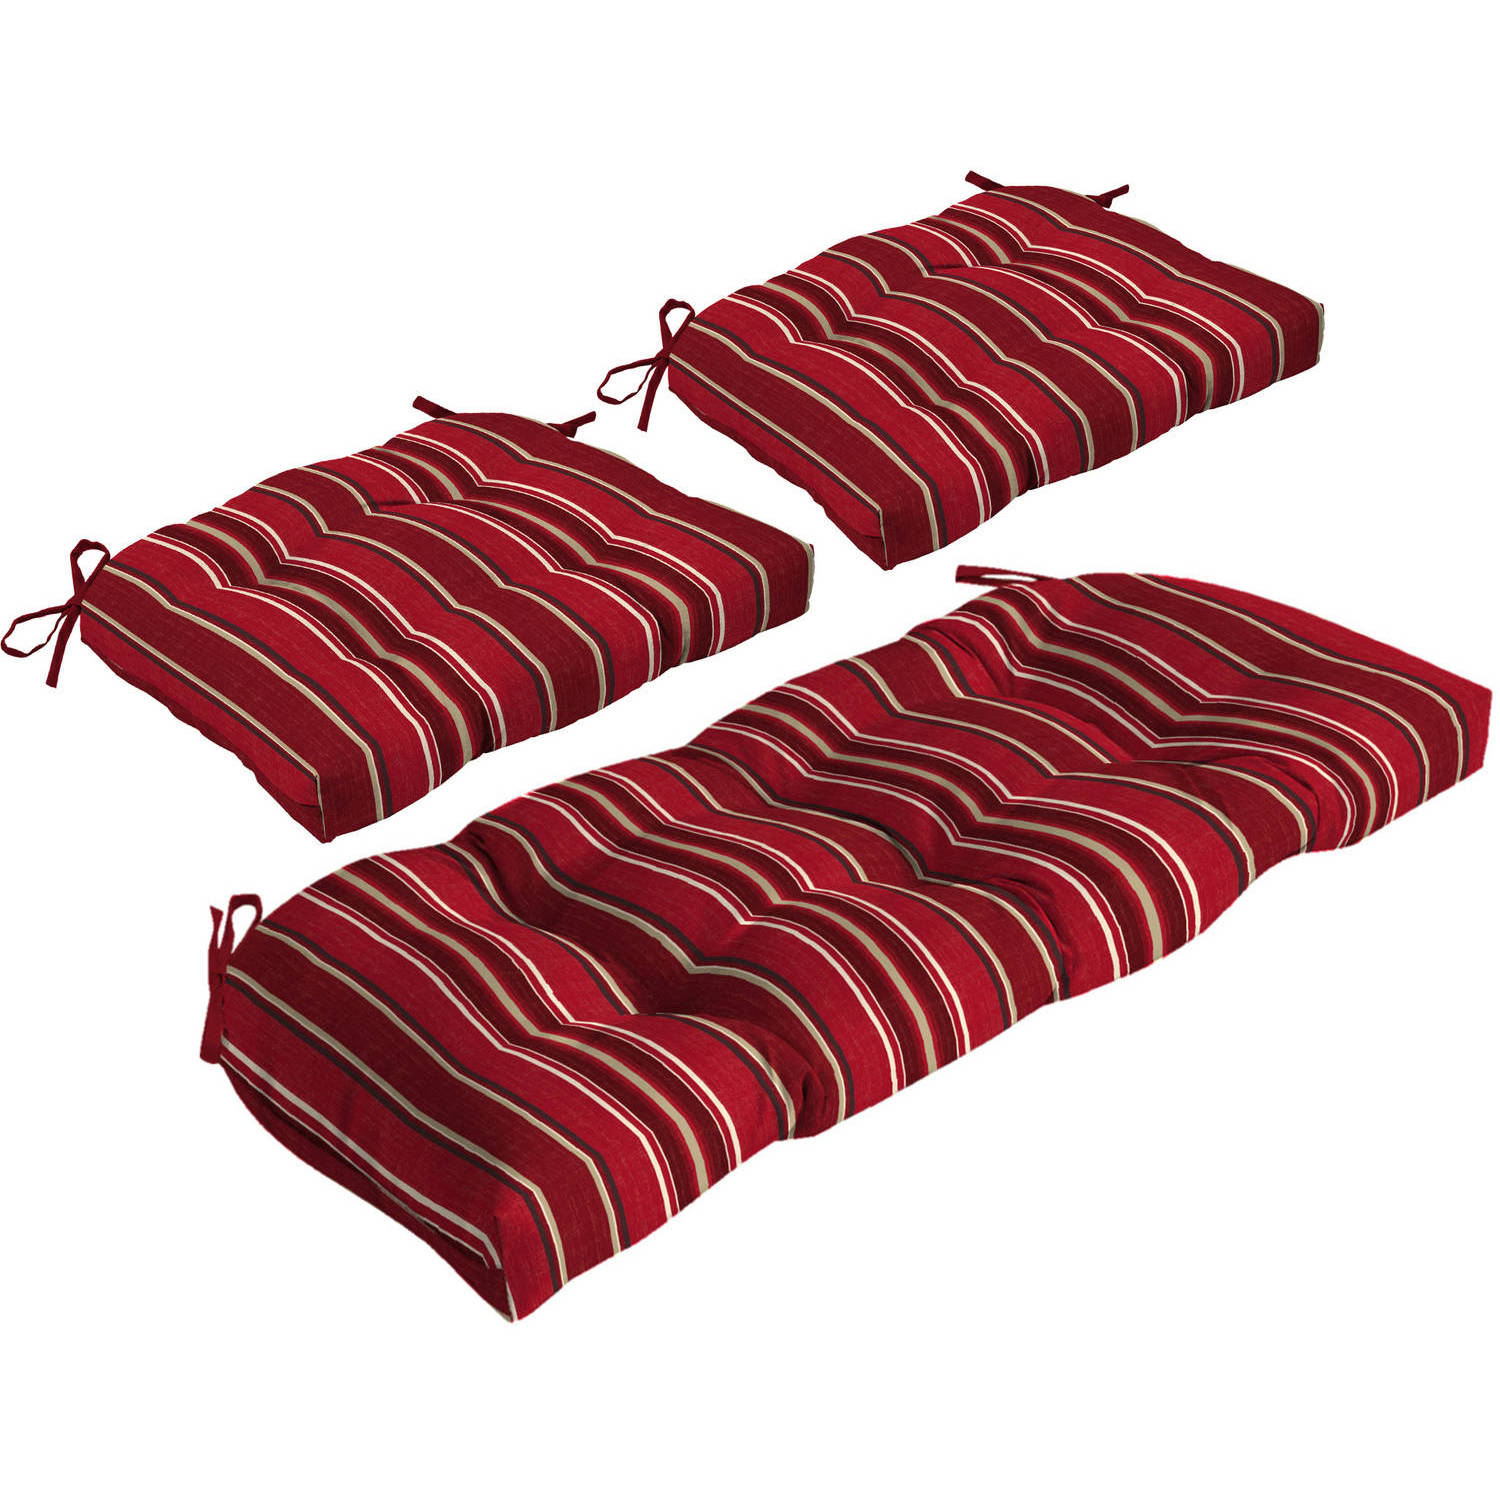 Better Homes and Gardens Outdoor Patio Wicker Cushion Set for Settee and 2 Chairs